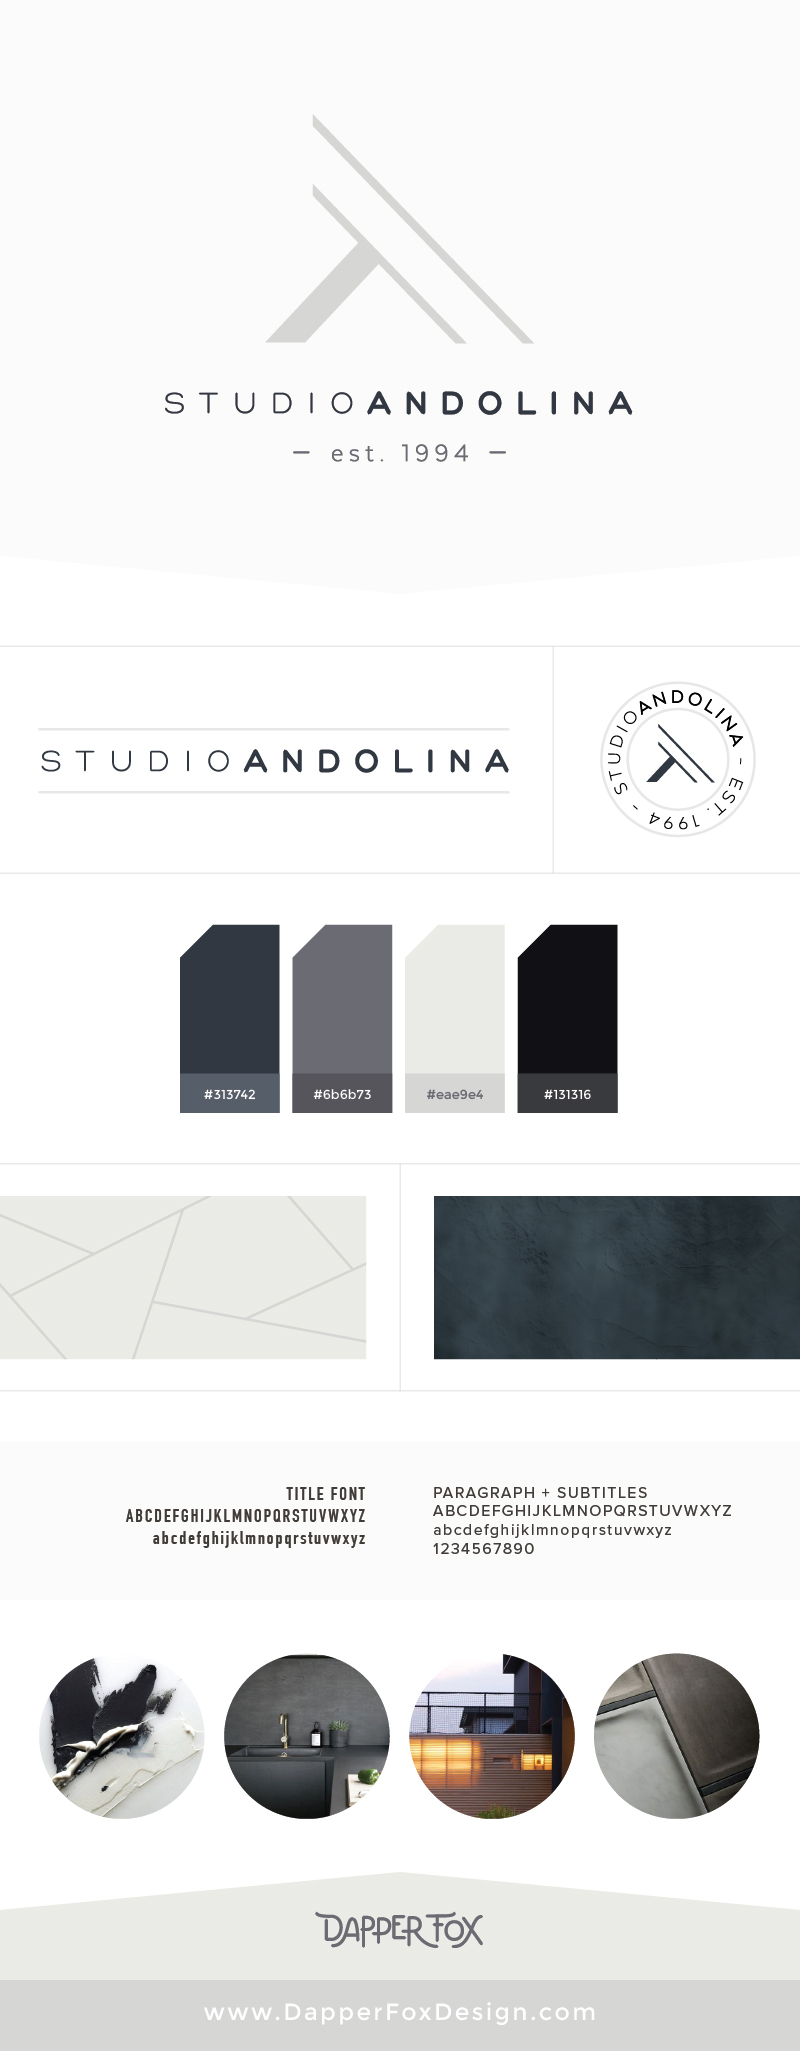 Logo Design options for StudioAndolina by Dapper Fox - Modern Logo Design, #masculine #neutral #branding #logo #logodesign #modernlogo